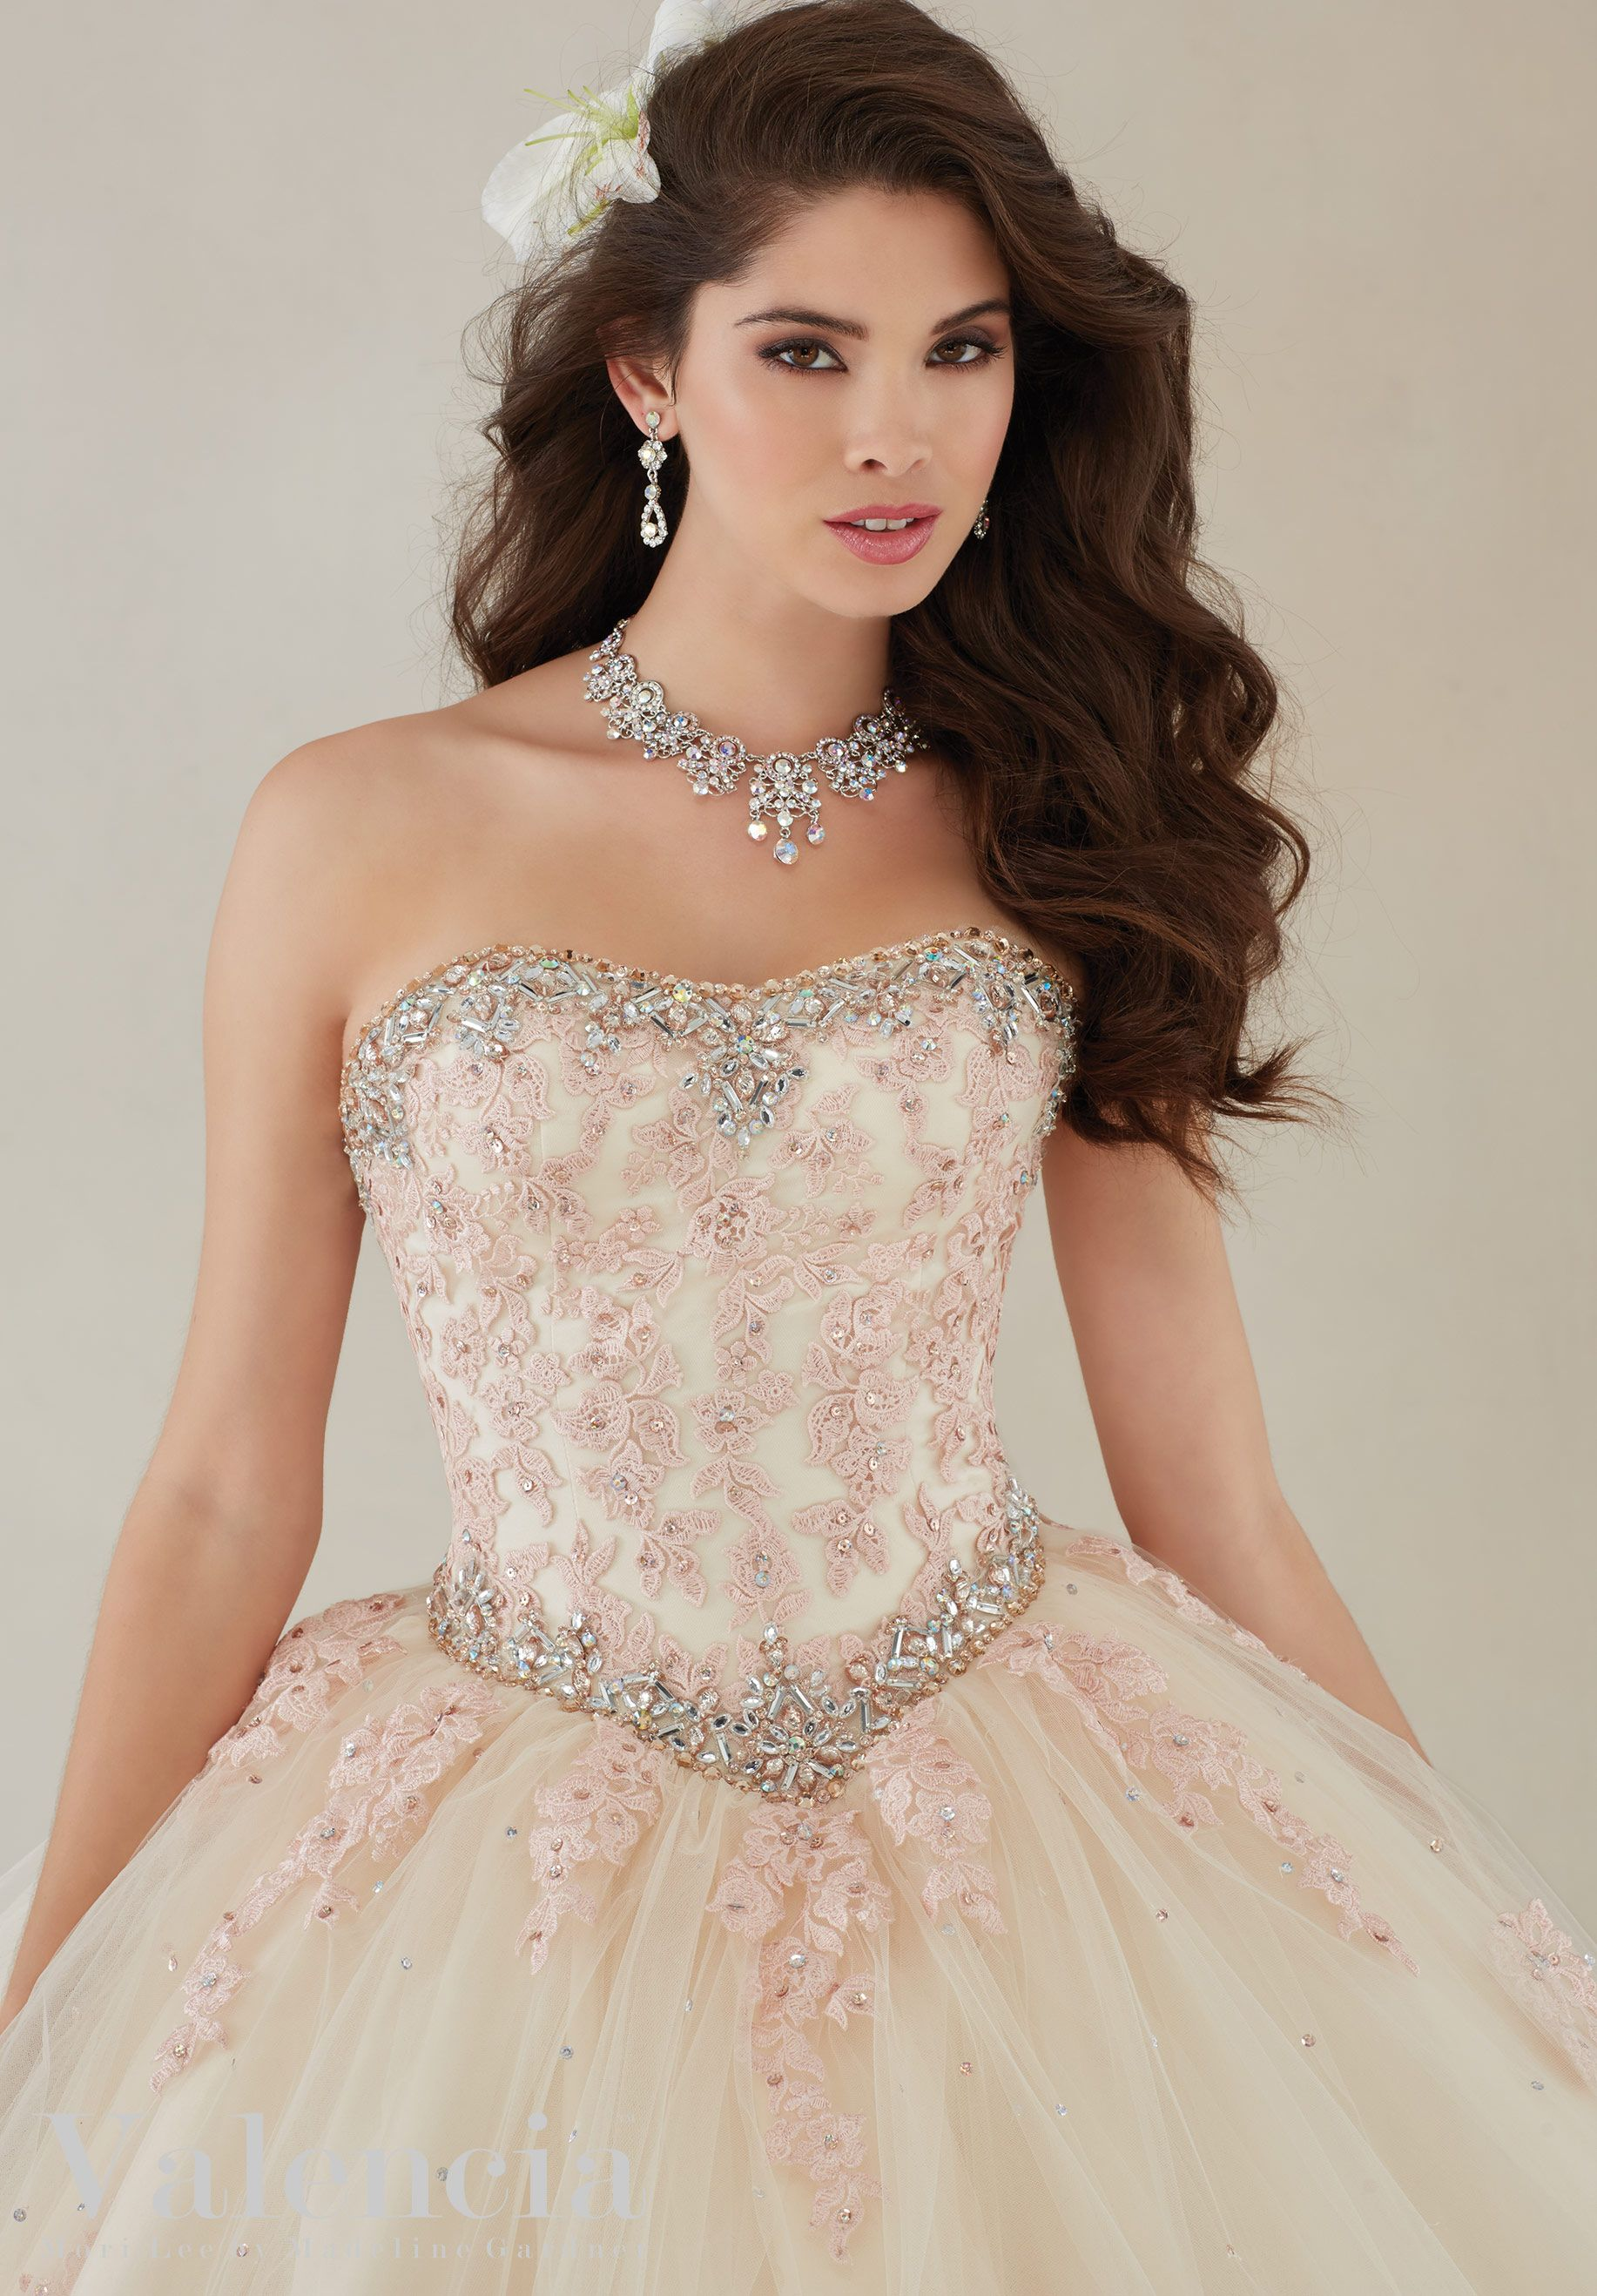 Quinceanera Dresses Sleeveless V Neck Tulle Ball Gown Beaded Girls Masquerade Sweet 16 Dresses Ball Gowns Vestidos De 15 Anos In Pain Weddings & Events